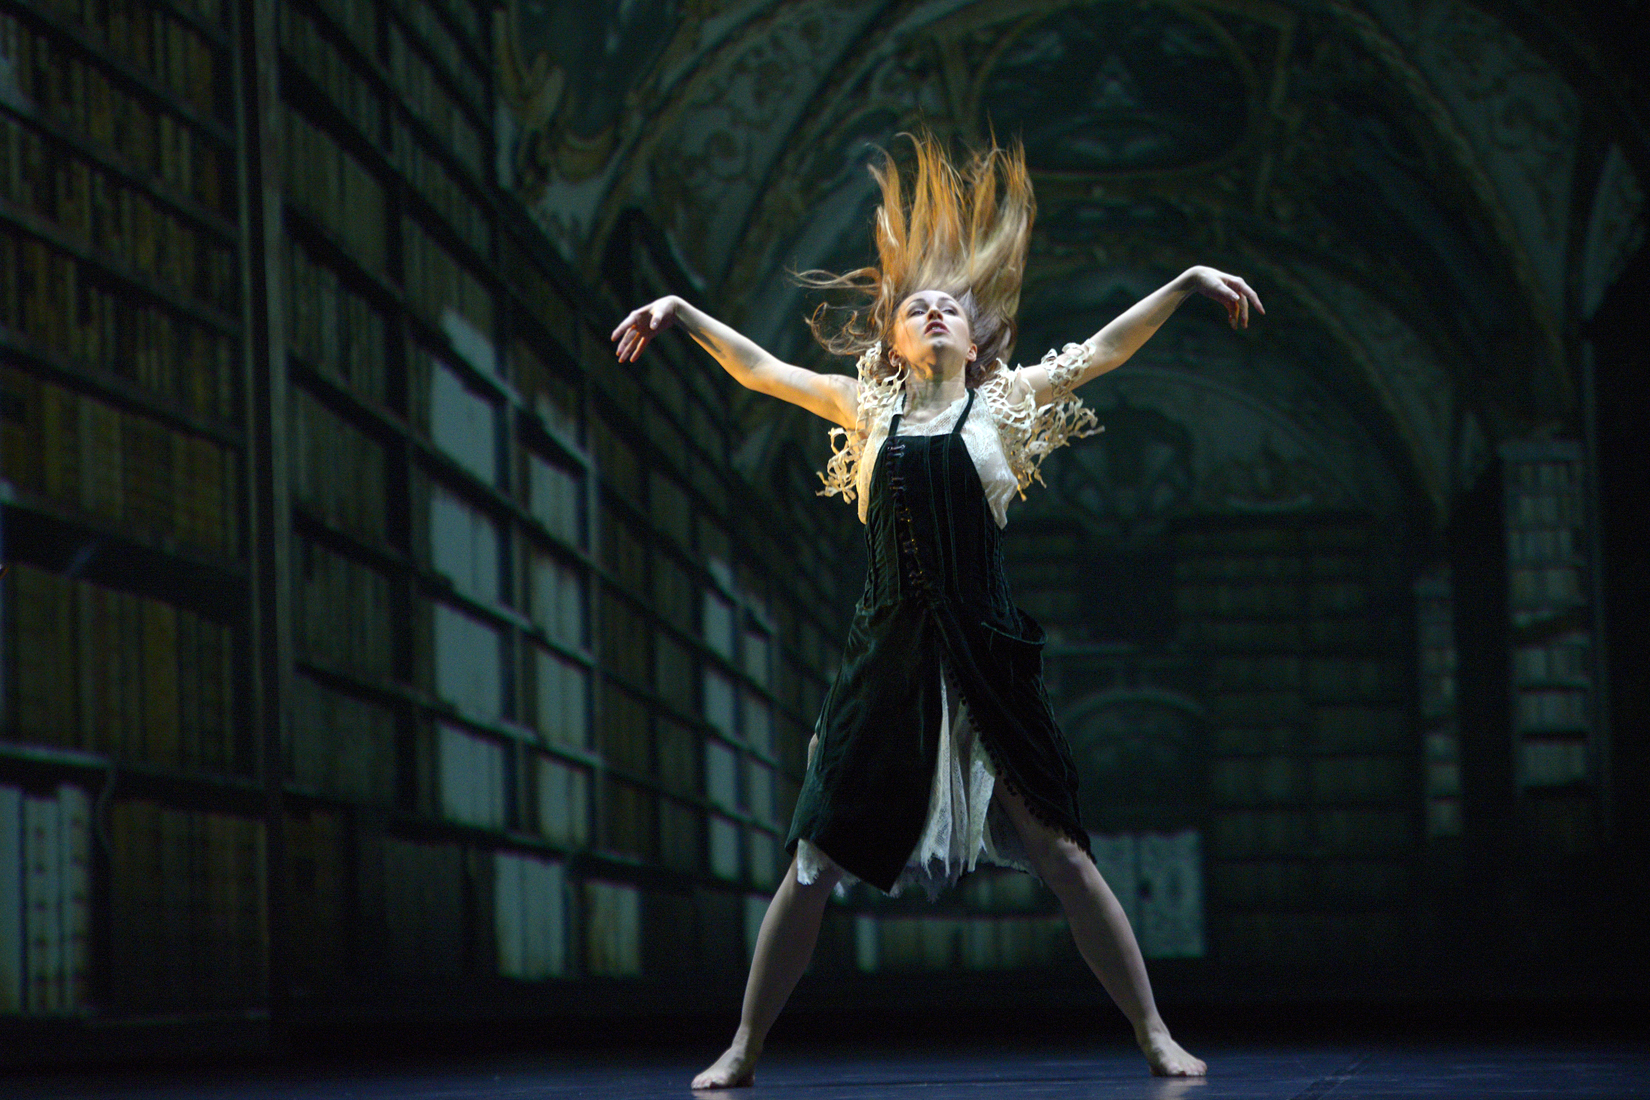 Alice-Ballett Dortmund